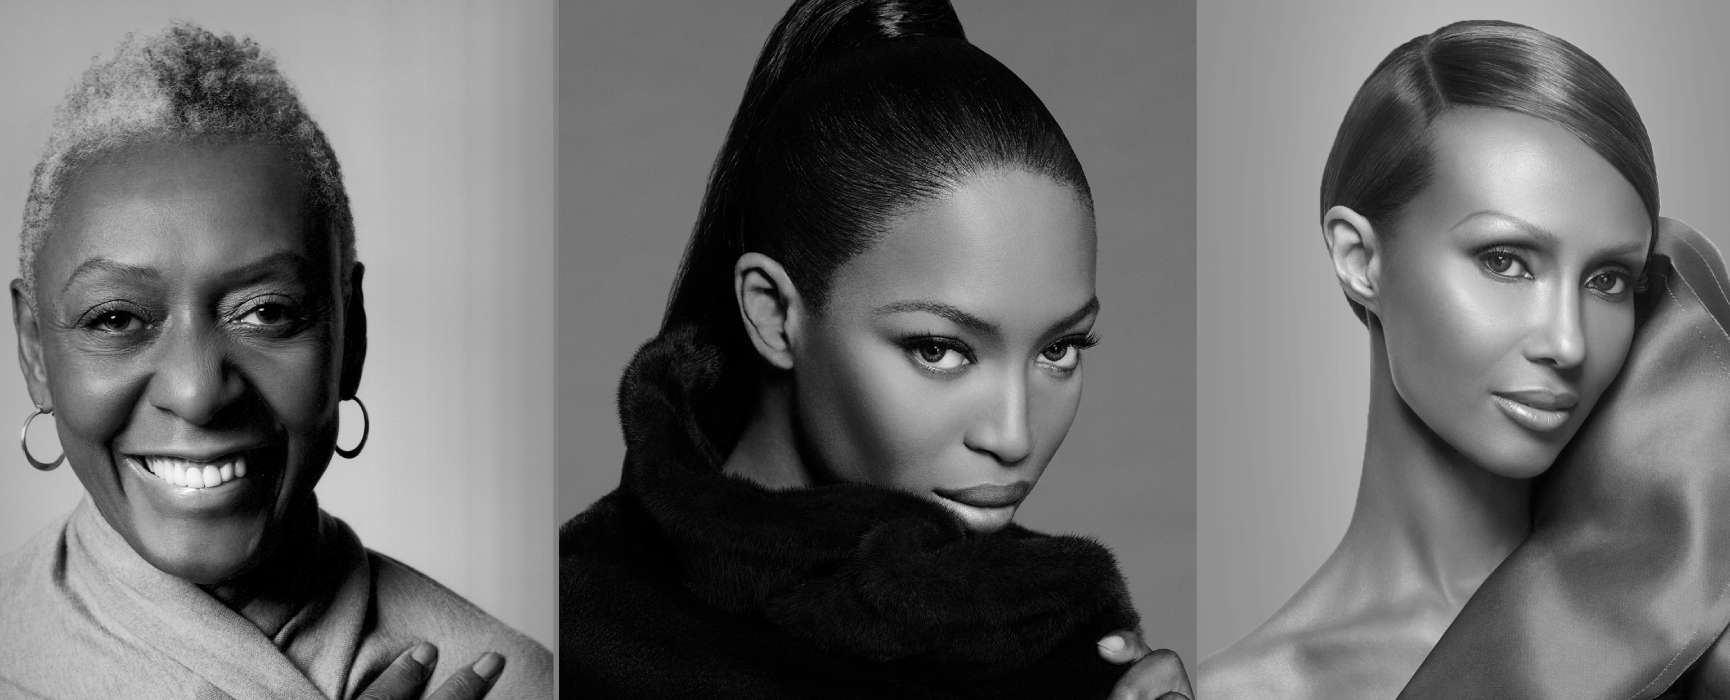 Images of fashion model and advocate Bethann Hardison; model, activist, and philanthropist Naomi Campbell; and model, author, and entrepreneur Iman.